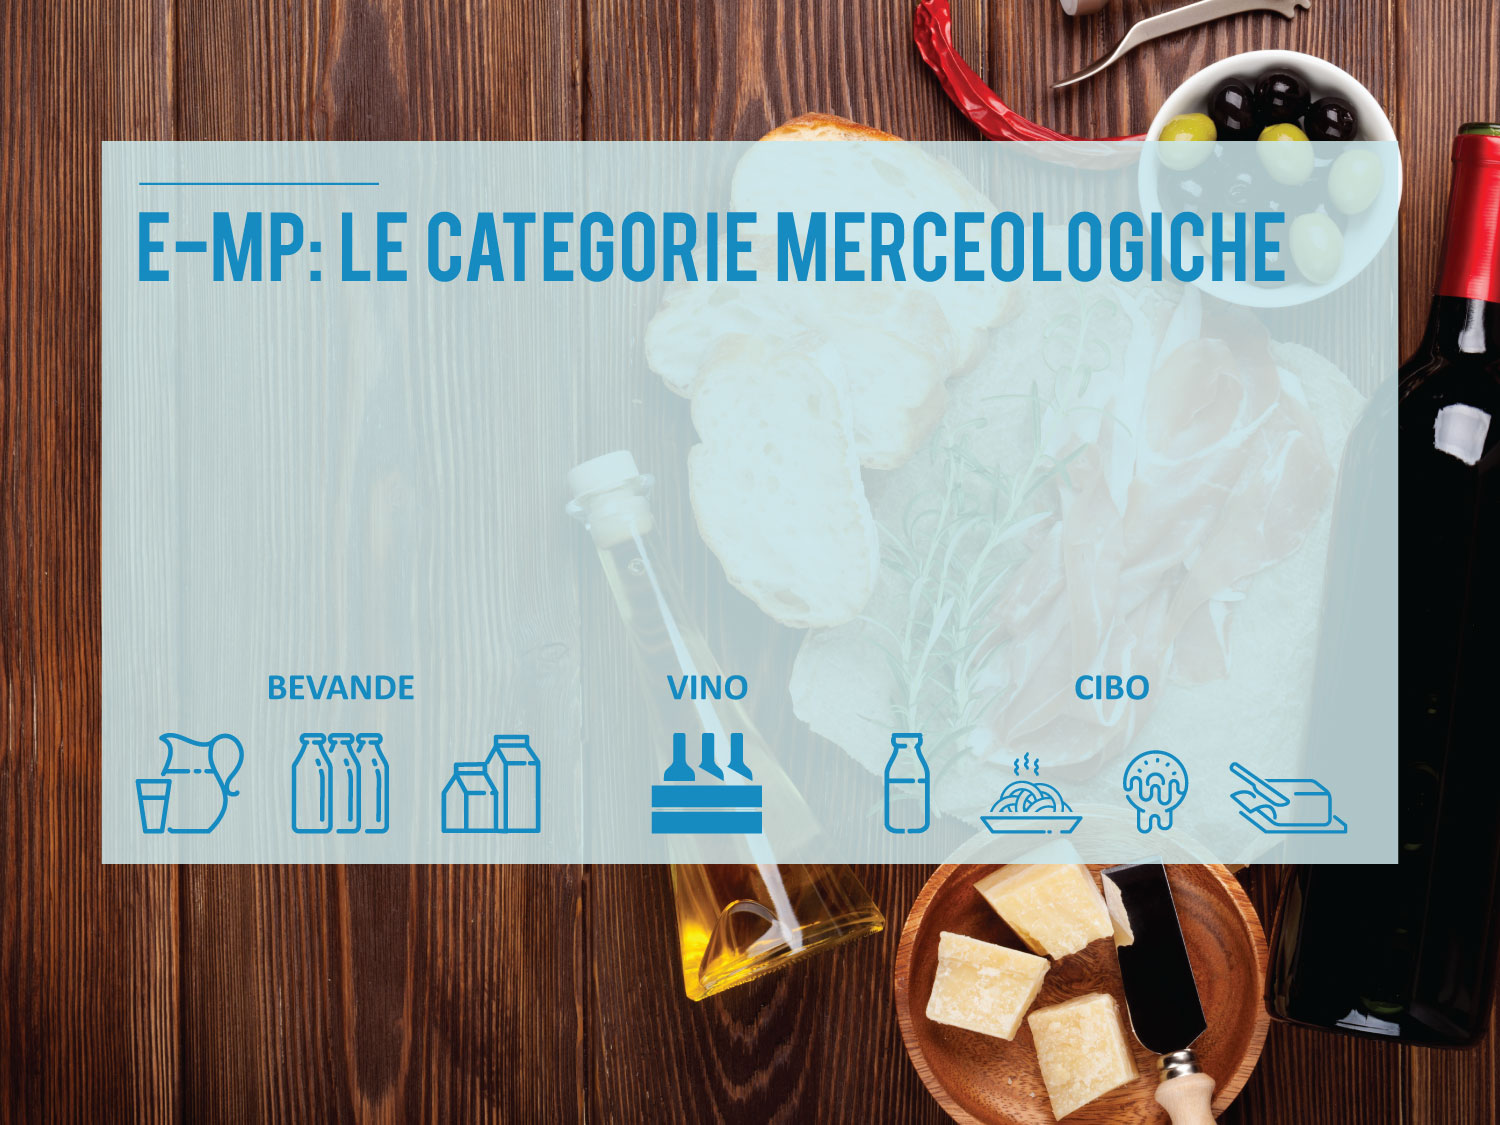 Le categorie merceologiche di E-Marco Polo